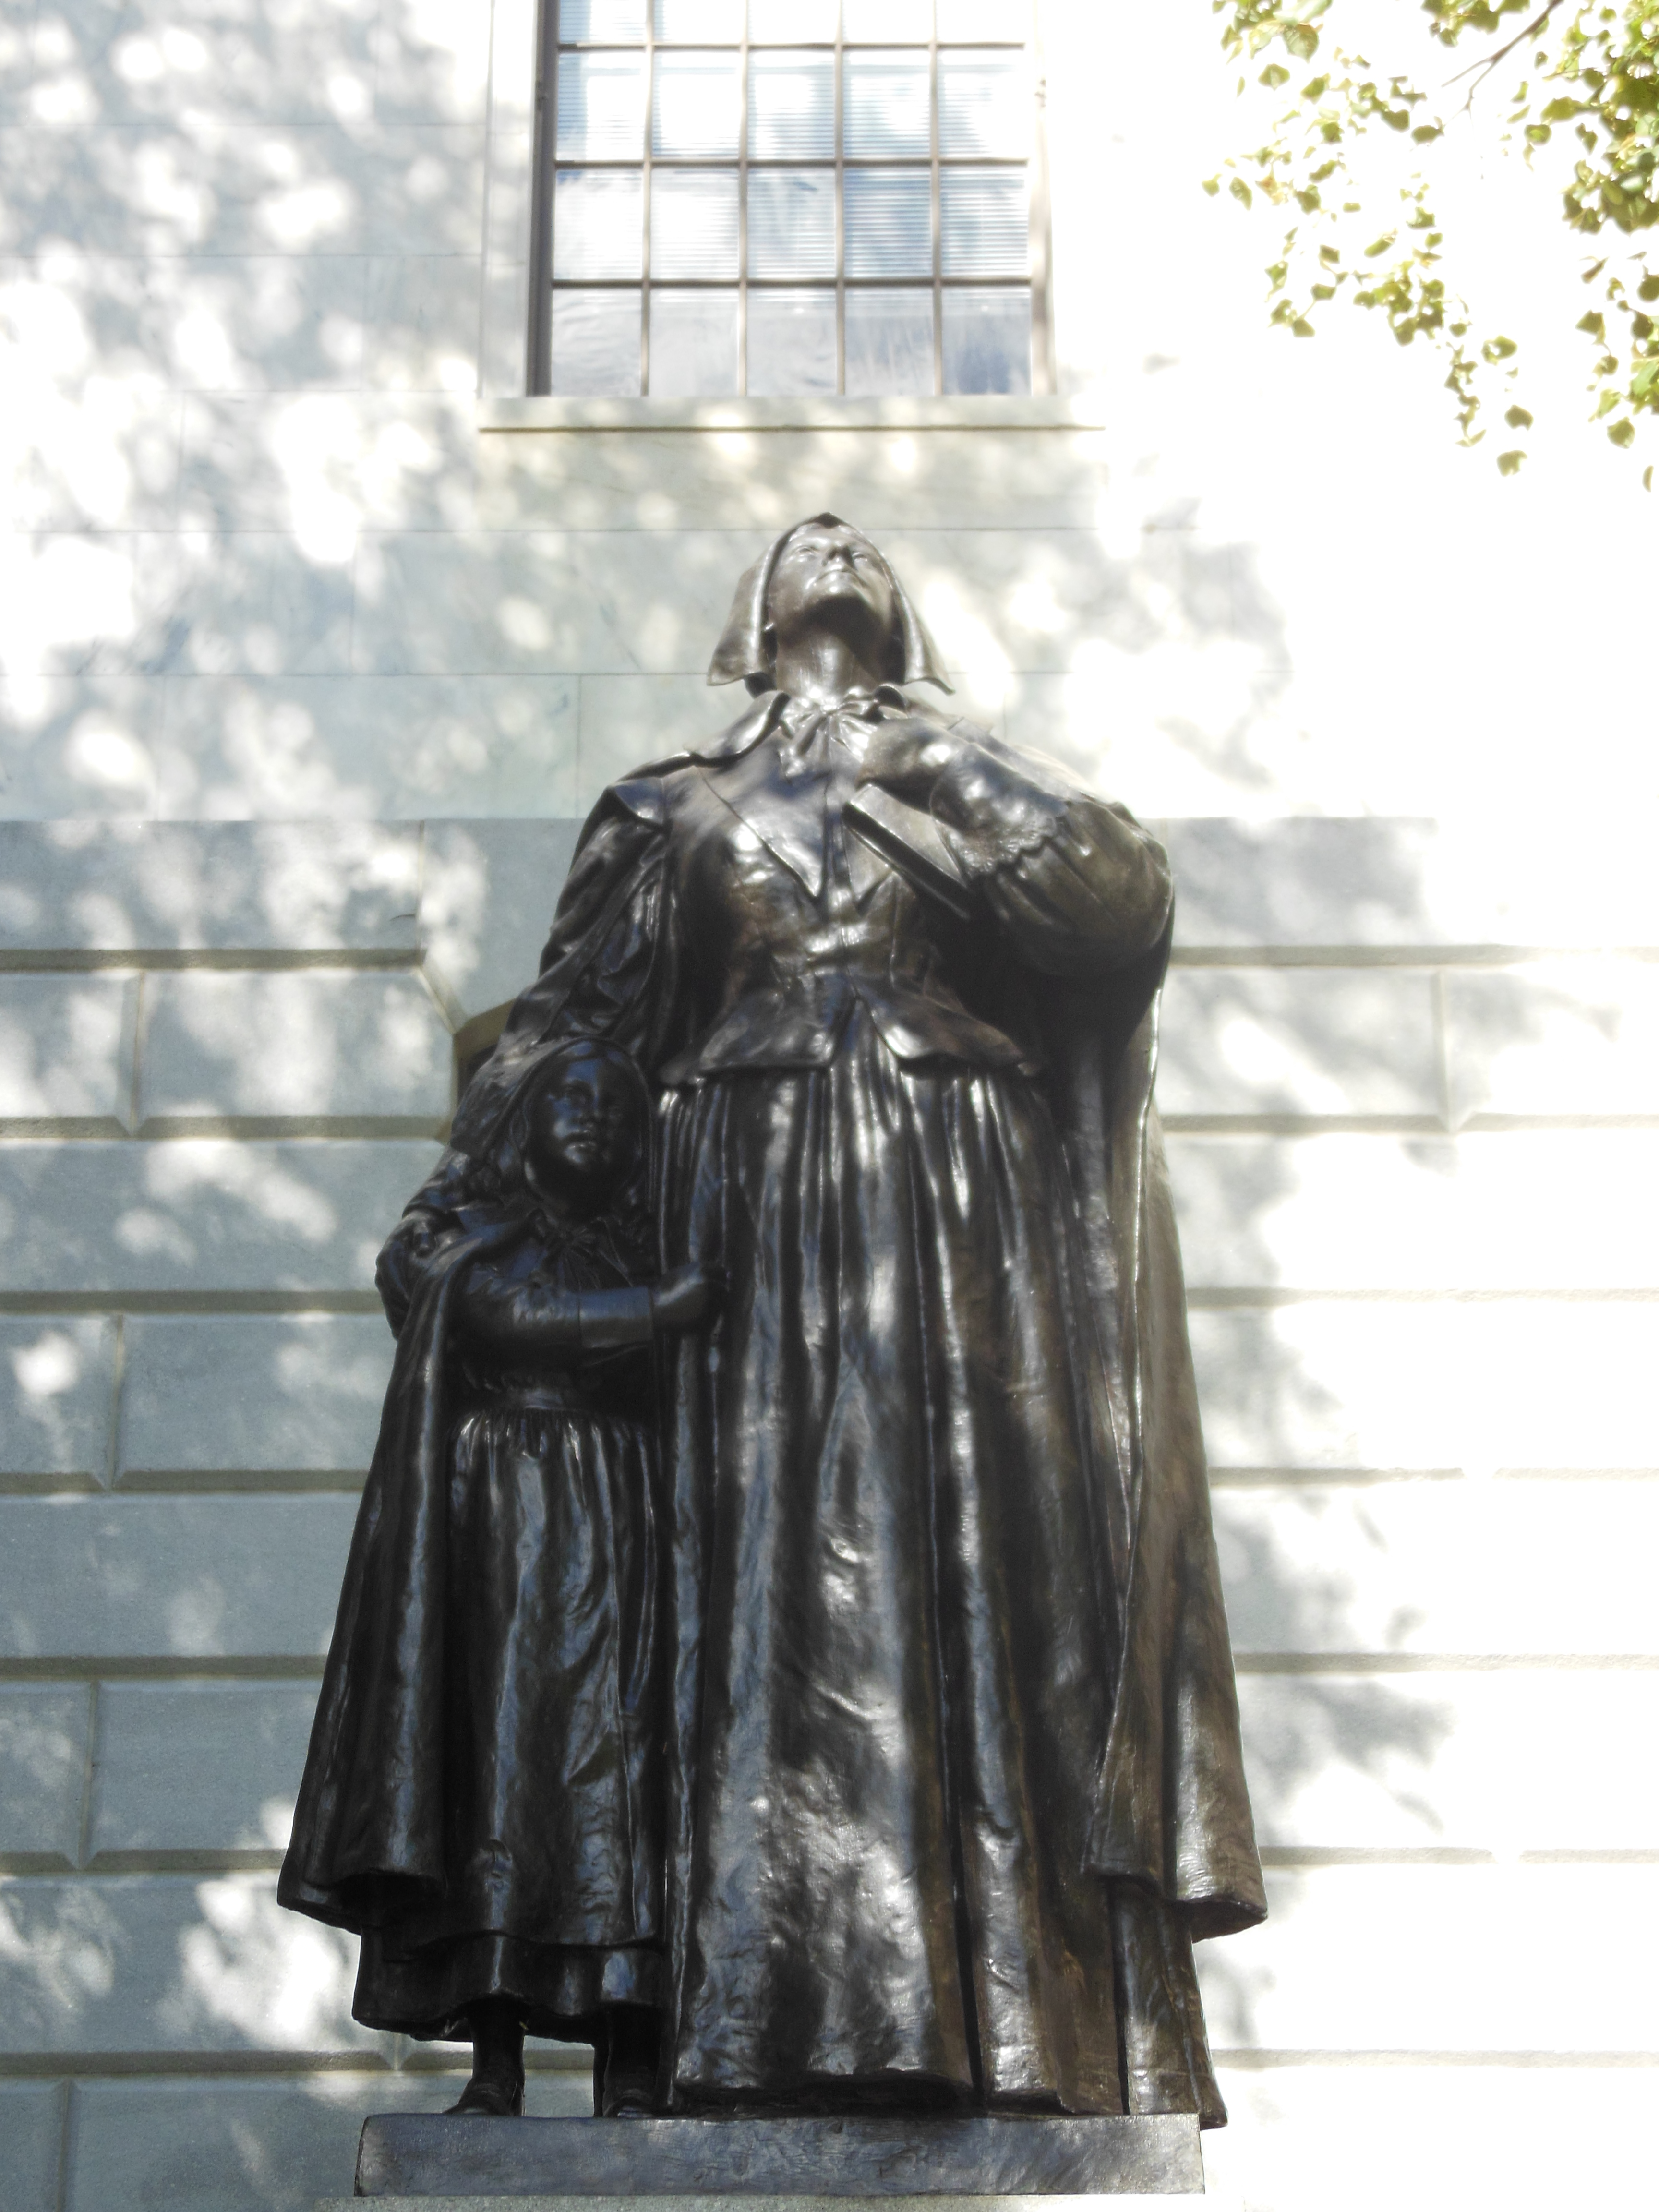 anne hutchinson a pioneer of feminism To begin with, neither roger williams nor anne hutchinson objected to   williams is often called a pioneer of religious liberty  sort of early feminist up  against the old boys network, as is commonly done, is an abomination of the  truth.